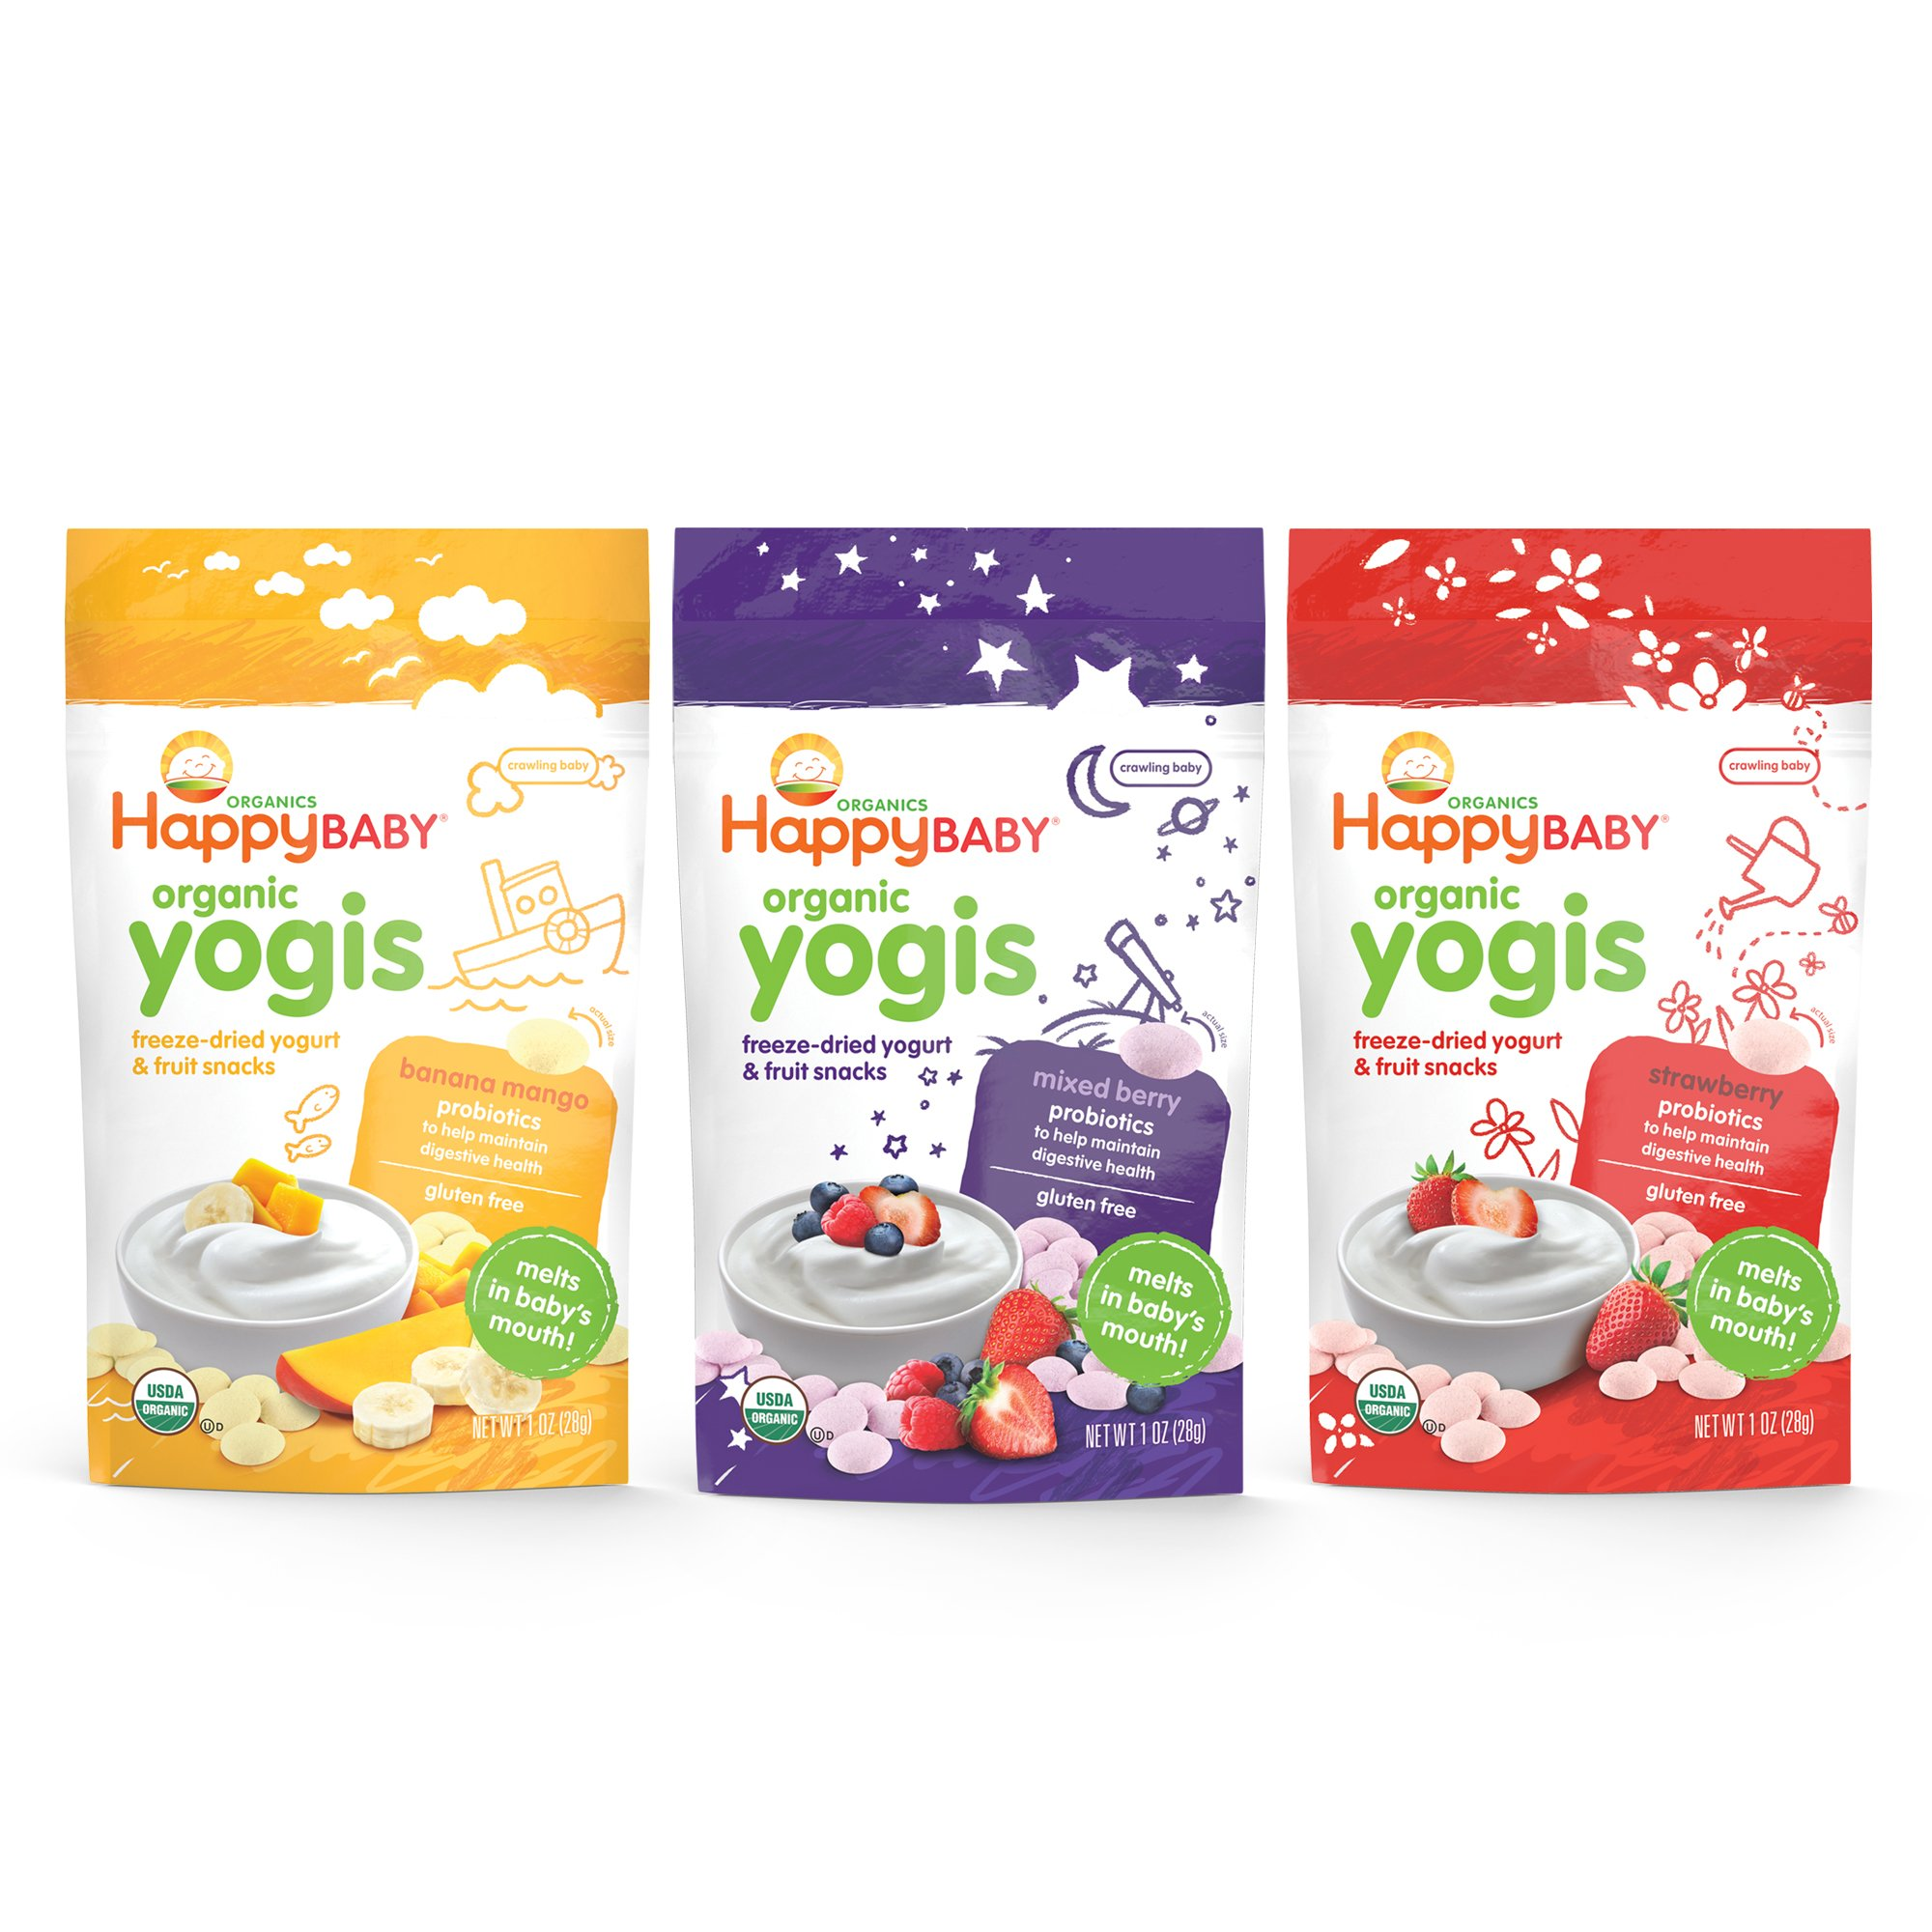 Happy Baby Organic Yogis, Freeze-Dried Yogurt and Fruit Snacks, Mixed Berry, Banana Mango, Strawberry, 1oz. (Variety Pack), Organic, Gluten-Free, Easy to Chew Probiotic Snacks for Babies and Tots